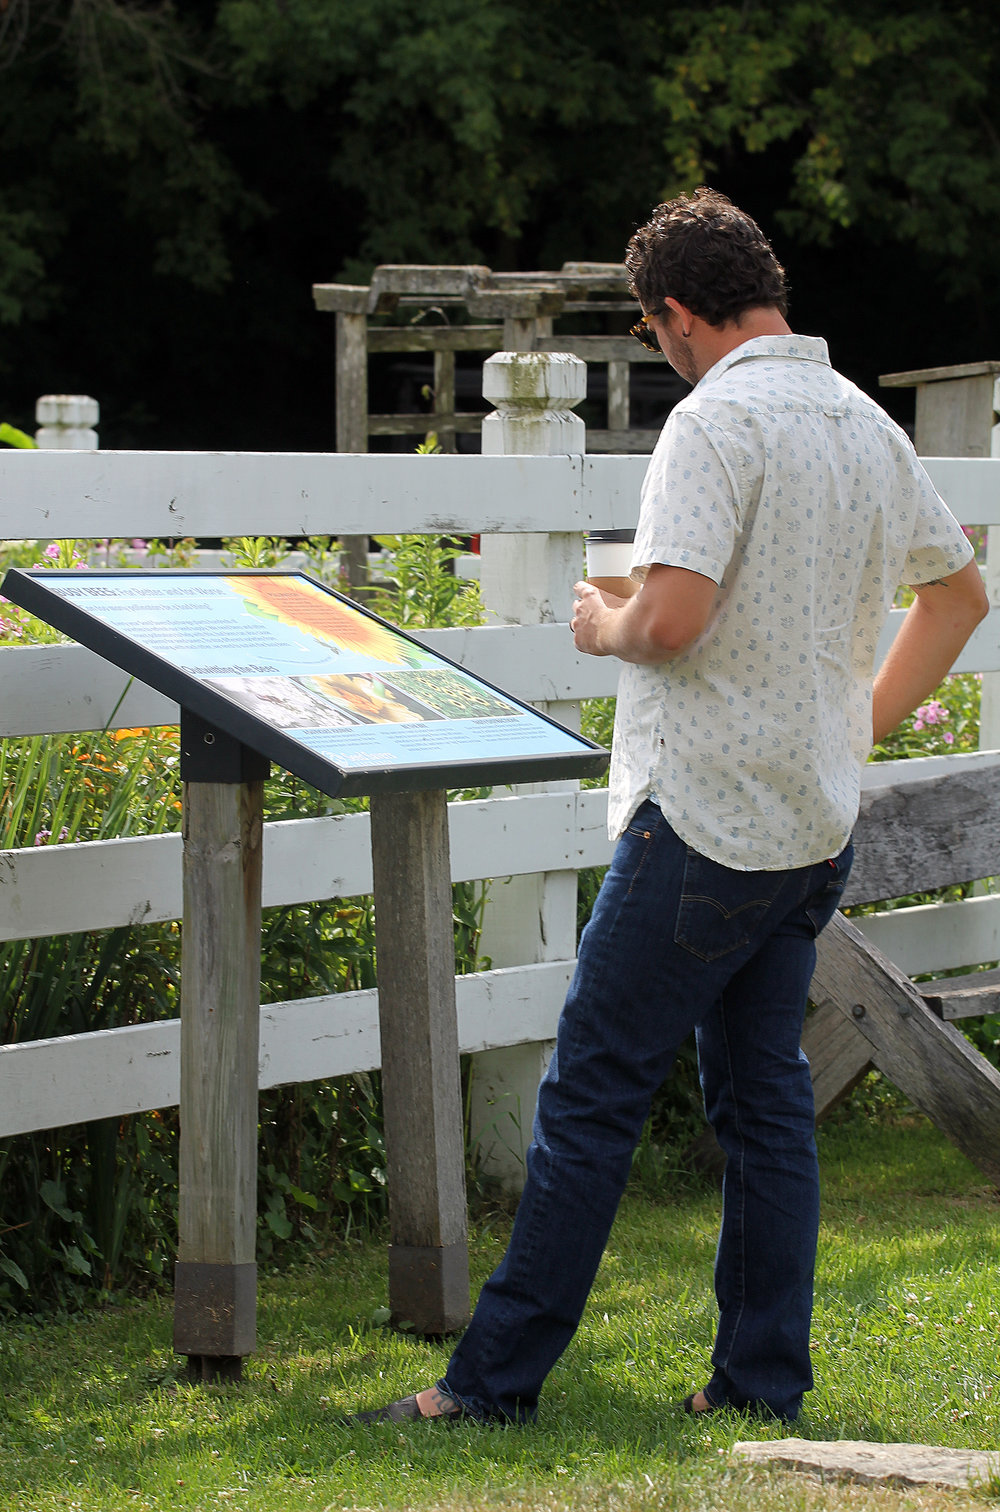 A visitor reads about pollination outside Diane's Garden.